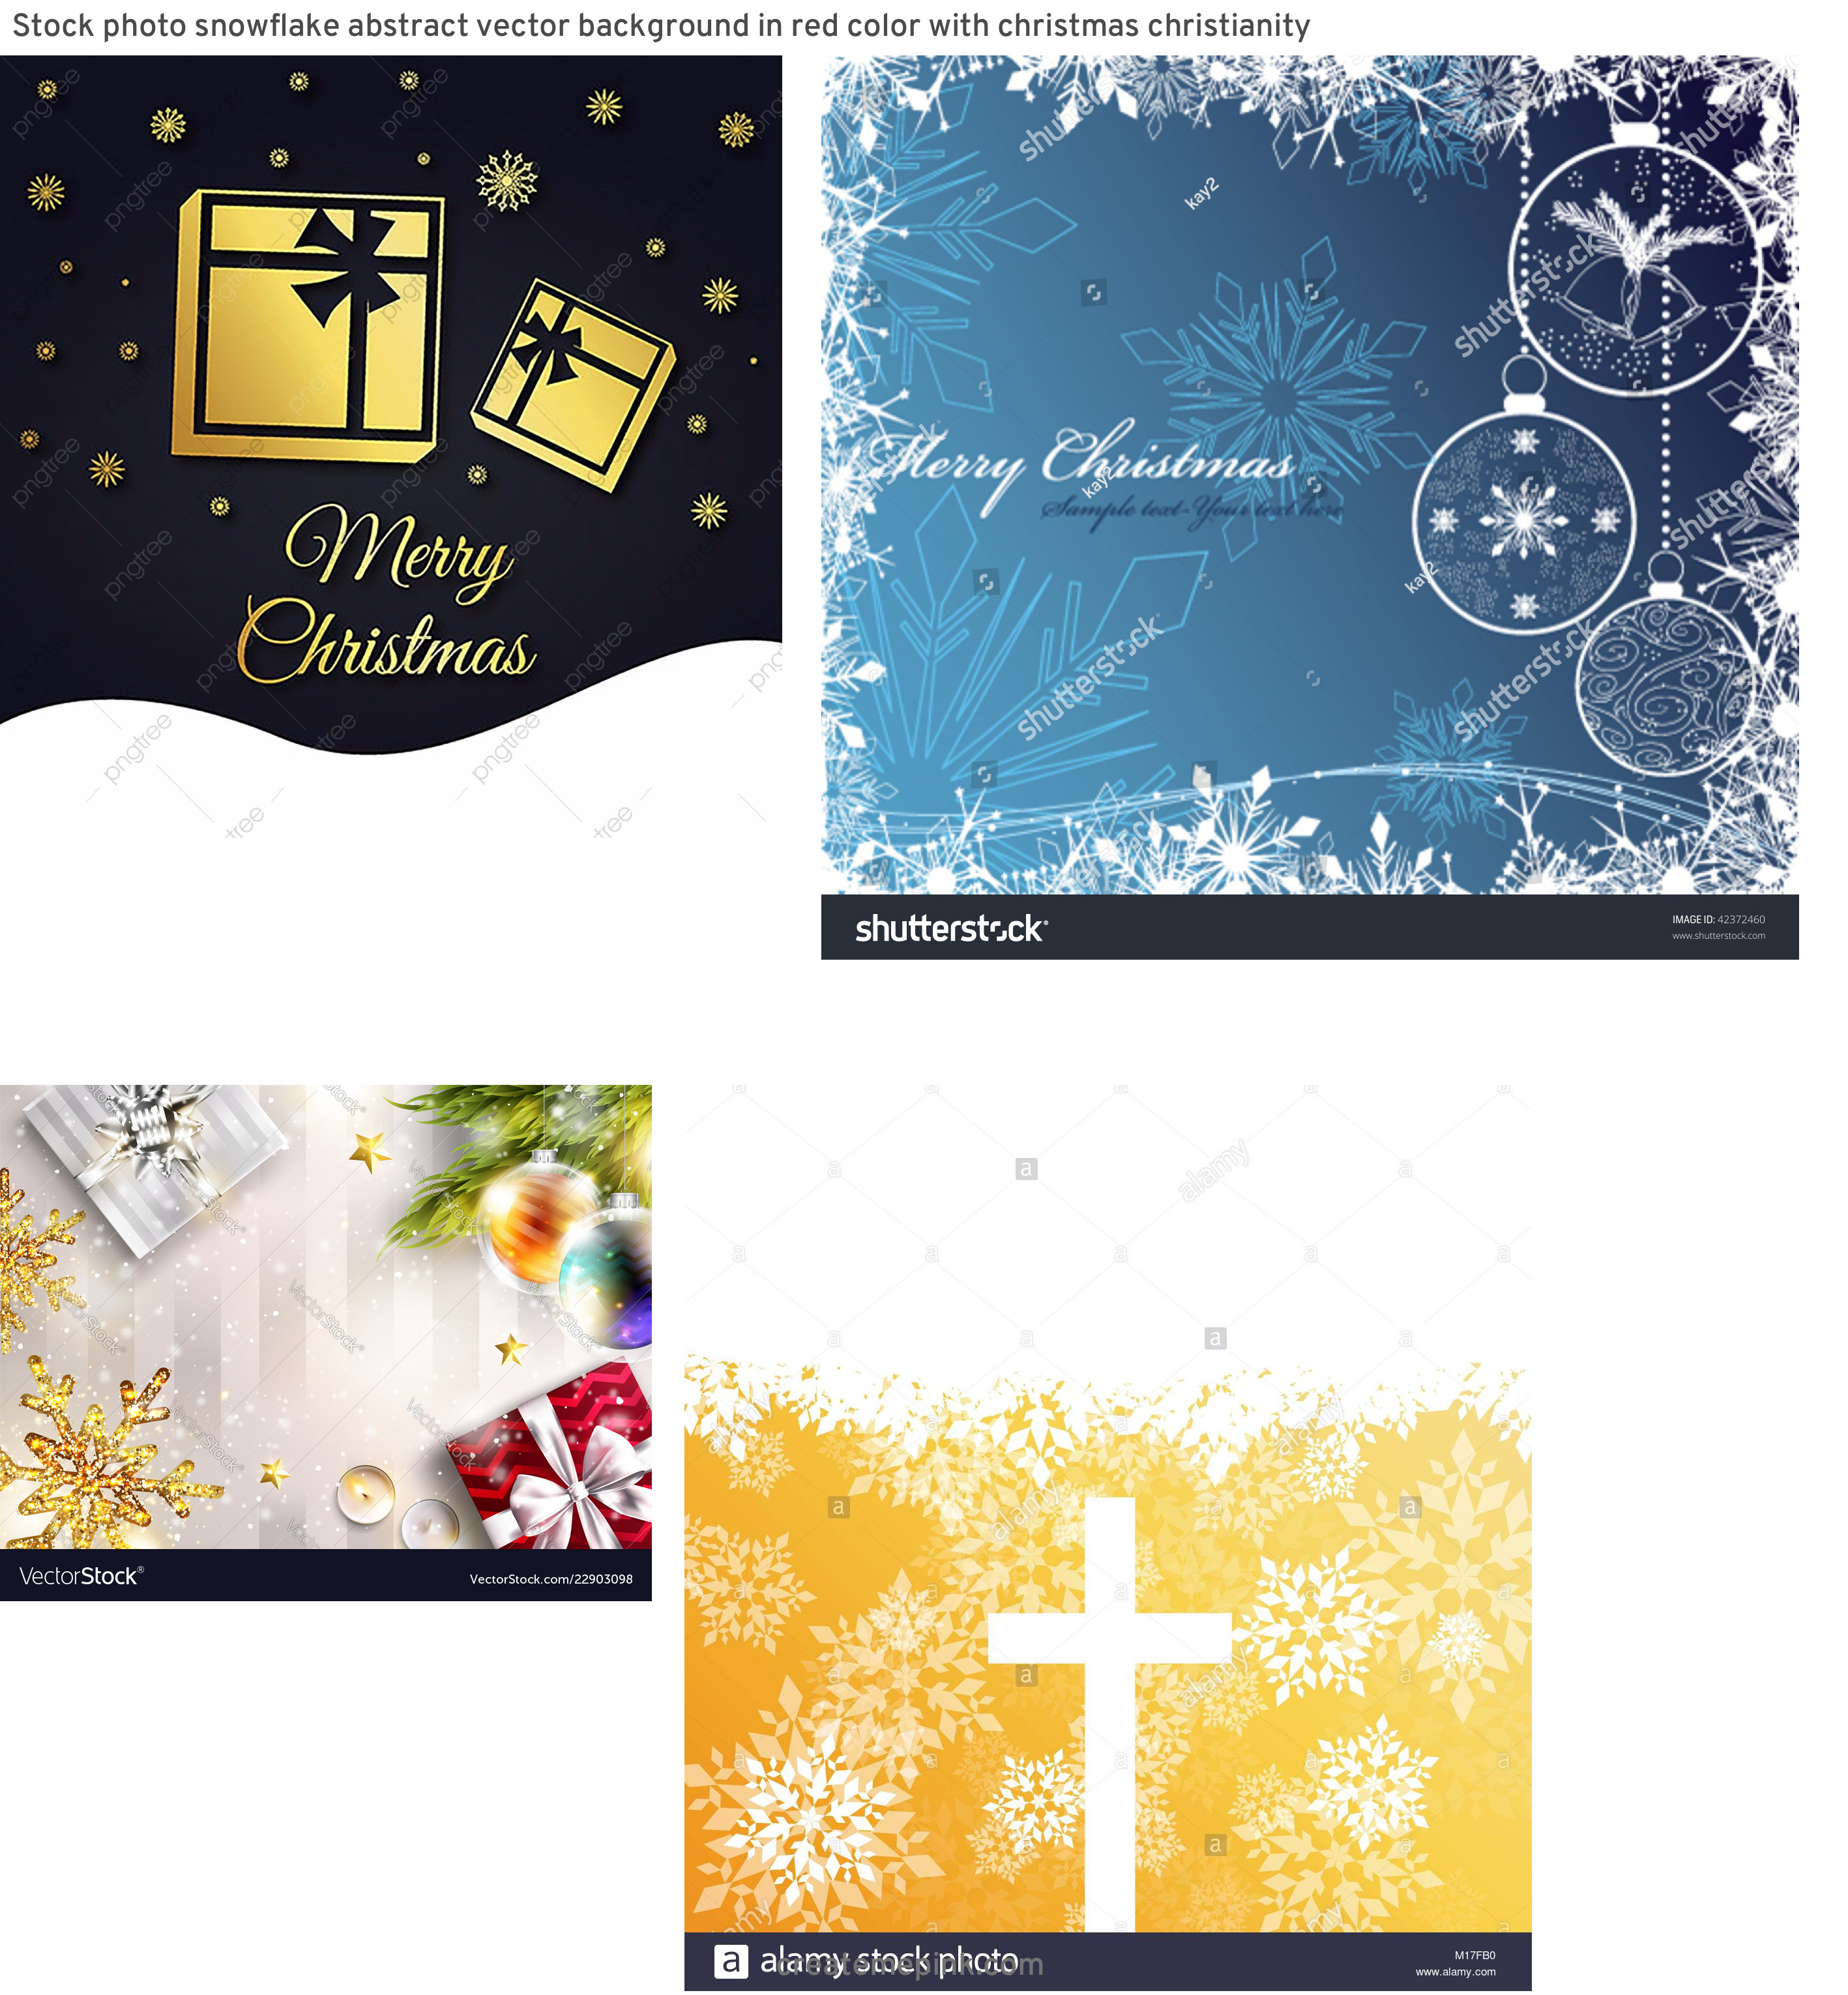 Vector Christmas Background Cross: Stock Photo Snowflake Abstract Vector Background In Red Color With Christmas Christianity